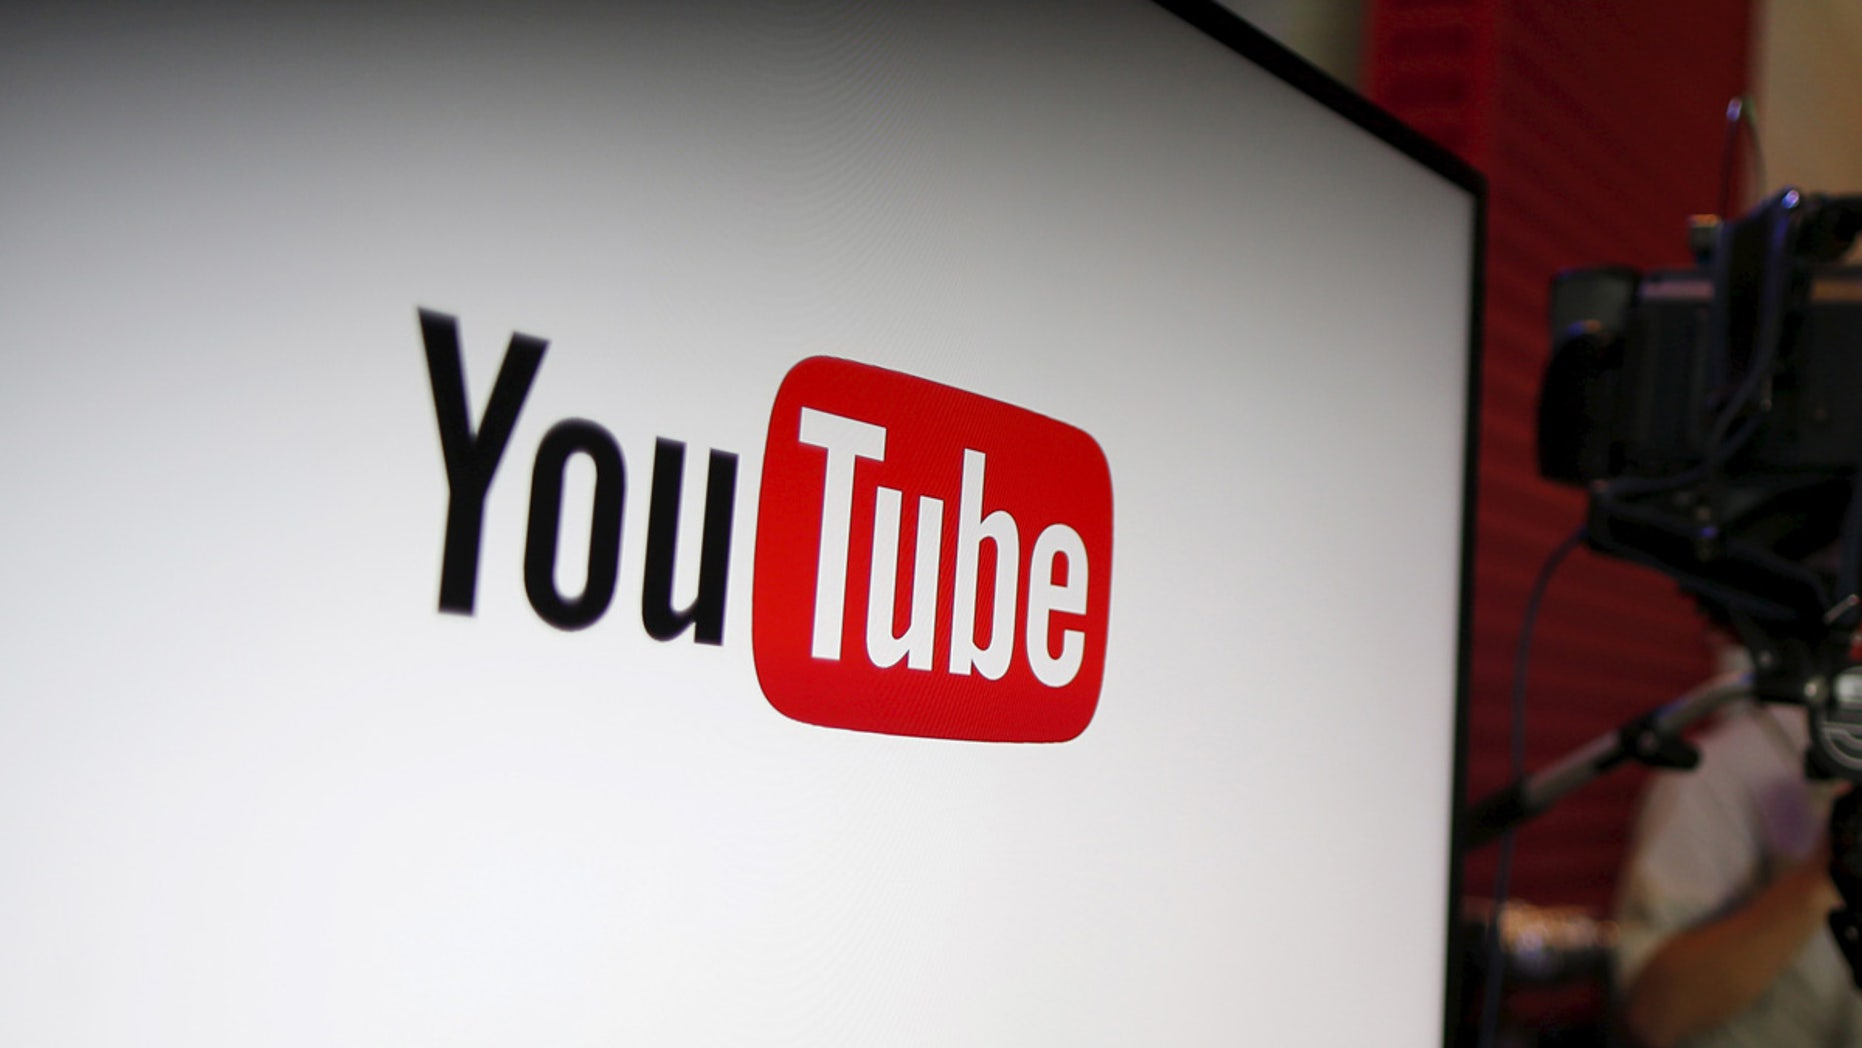 YouTube unveils their new paid subscription service at the YouTube Space LA in Playa Del Rey, Los Angeles, California, United States October 21, 2015. Alphabet Inc's YouTube will launch a $10-a-month subscription option in the United States on October 28 that will allow viewers to watch videos from across the site without interruption from advertisements, the company said on Wednesday.  REUTERS/Lucy Nicholson - GF20000027092